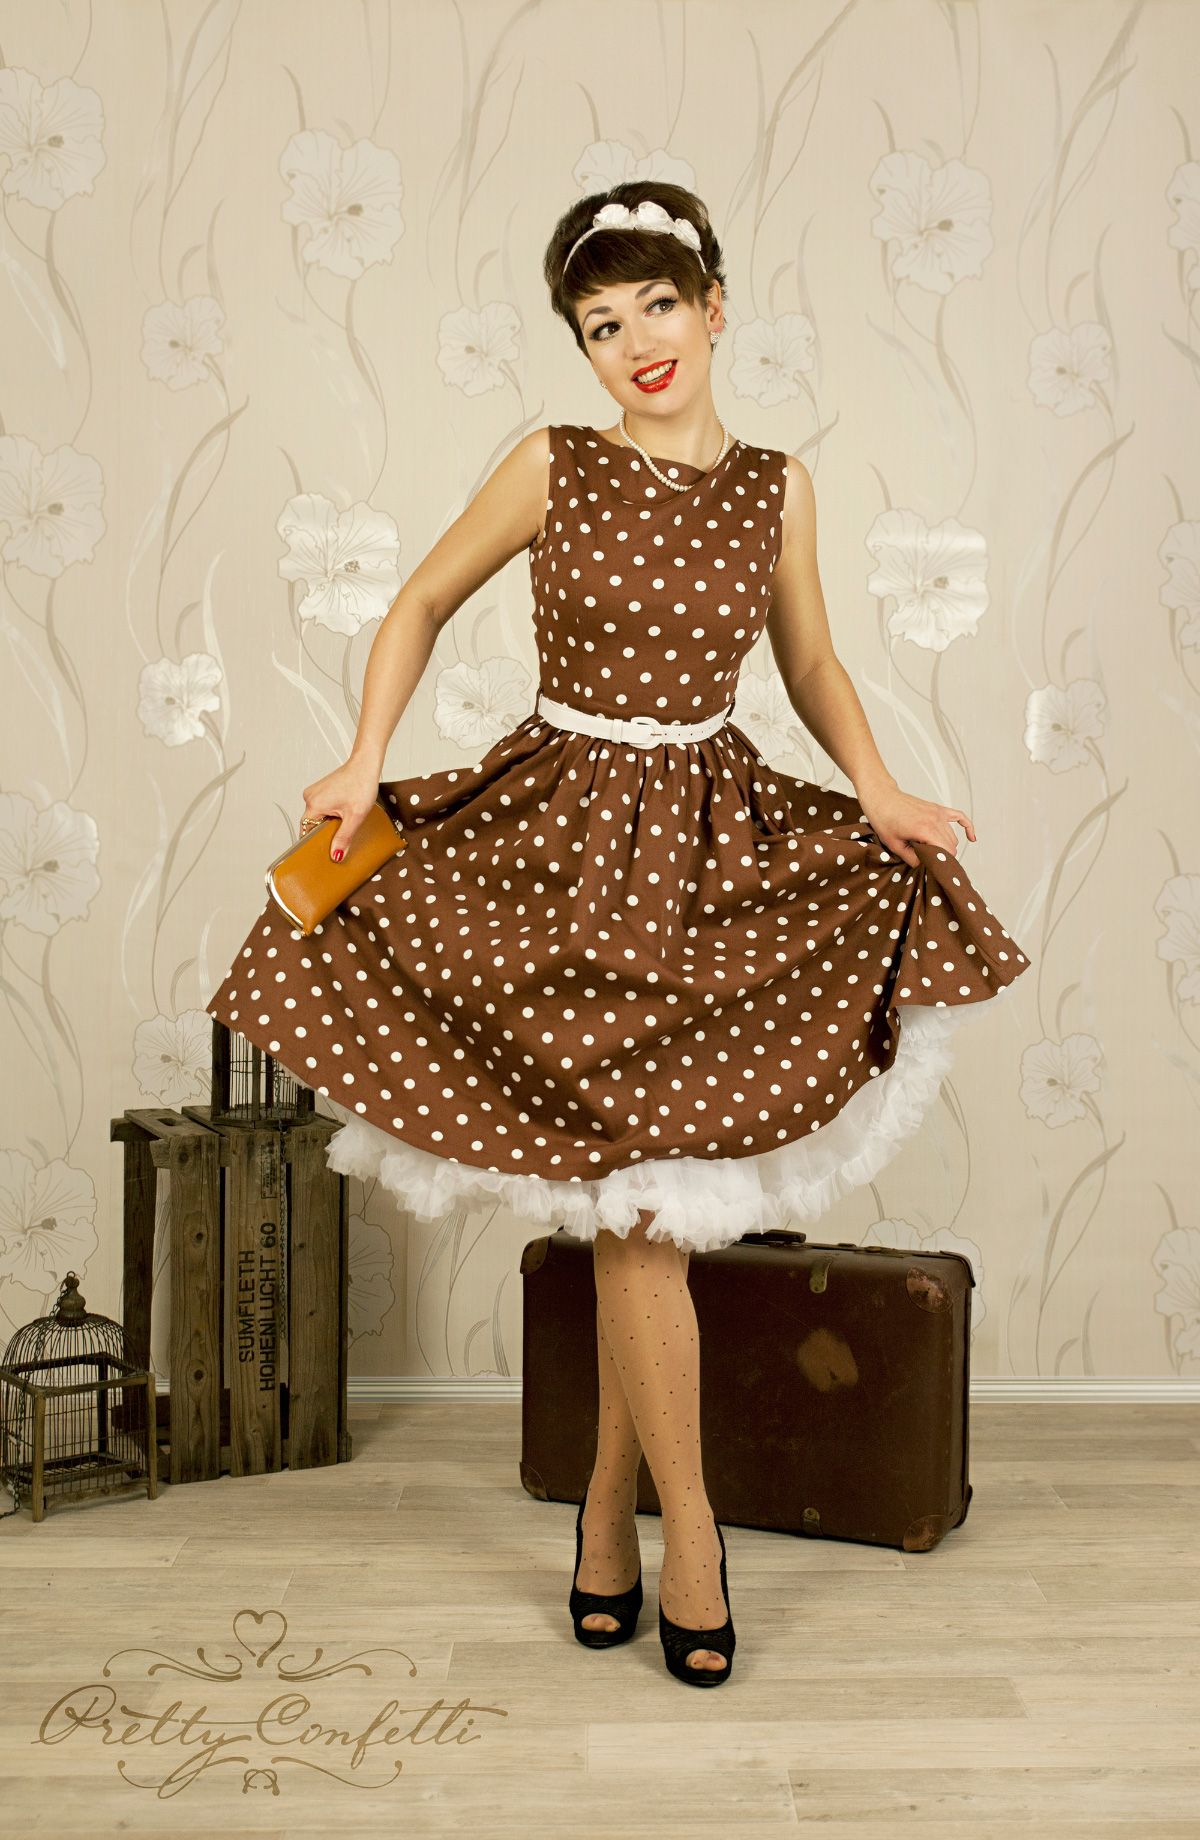 shop of the day is: pretty confetti ▷ http://pinup-fashion